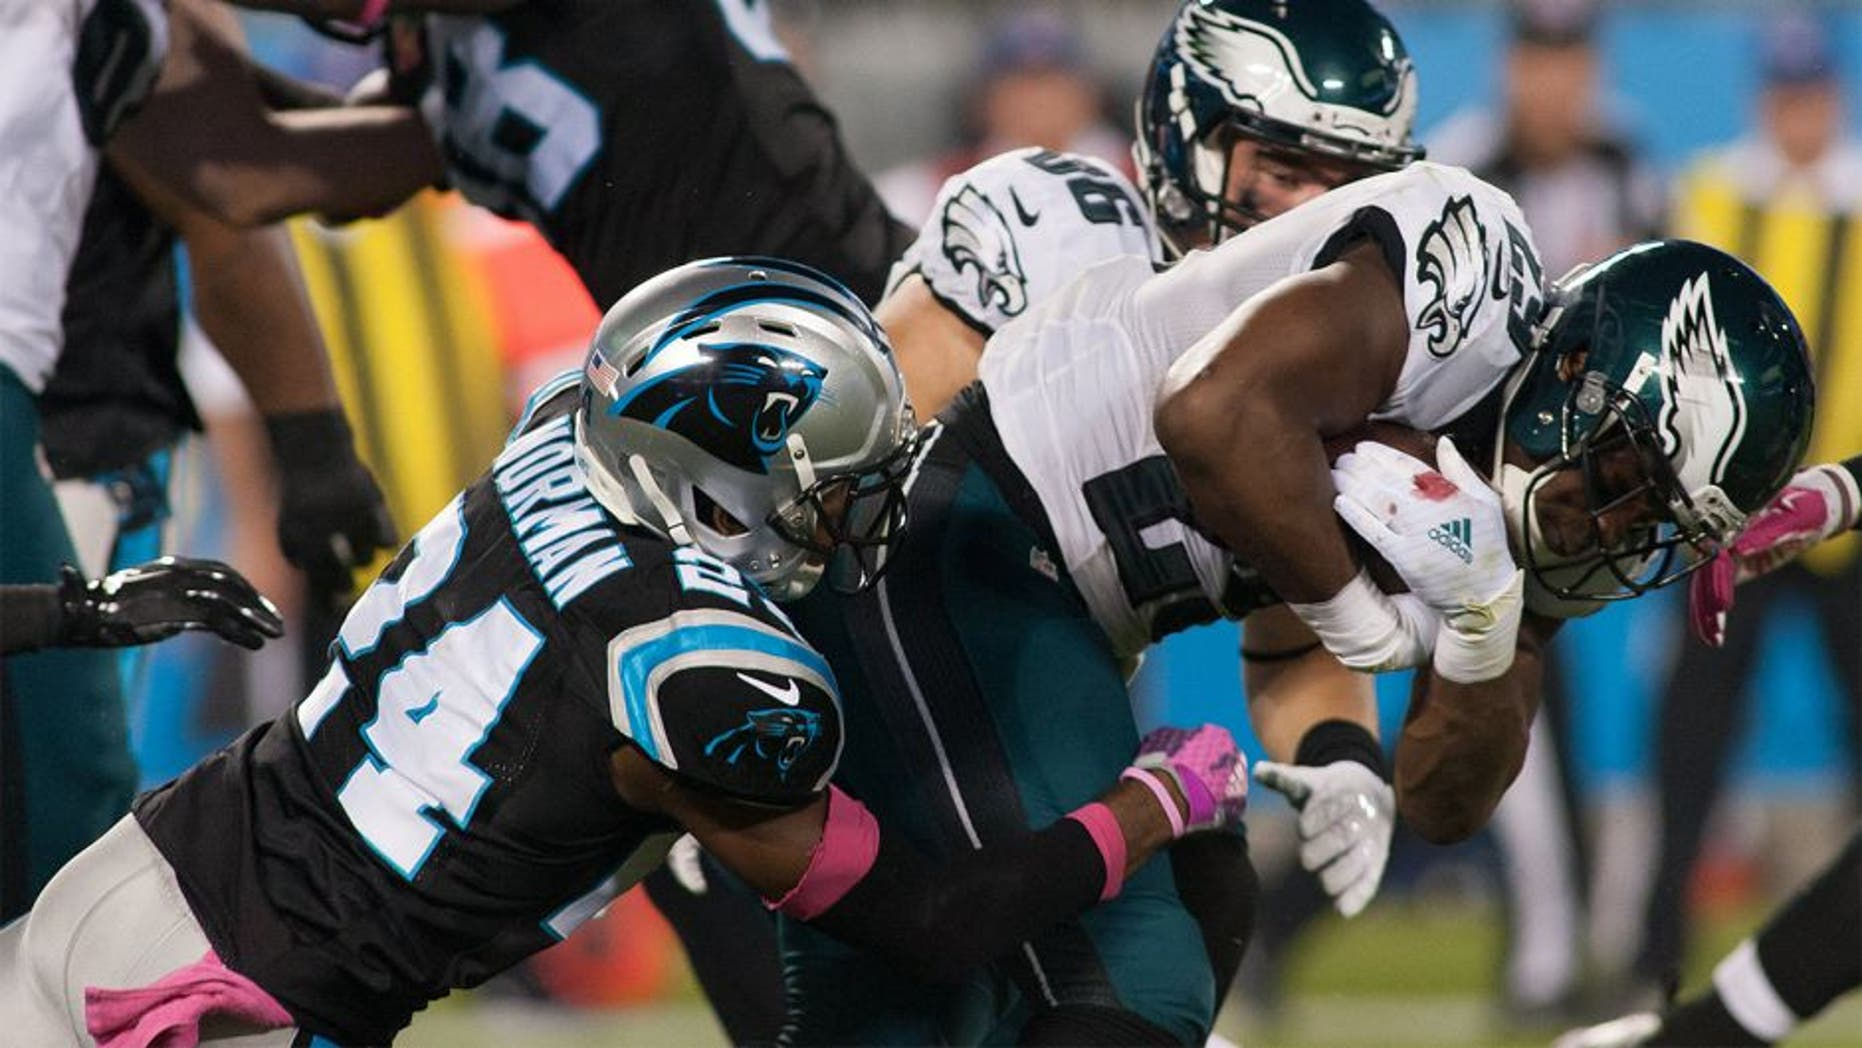 Oct 25, 2015; Charlotte, NC, USA; Philadelphia Eagles running back DeMarco Murray (29) gets tackled by Carolina Panthers cornerback Josh Norman (24) during the first quarter at Bank of America Stadium. Mandatory Credit: Jeremy Brevard-USA TODAY Sports